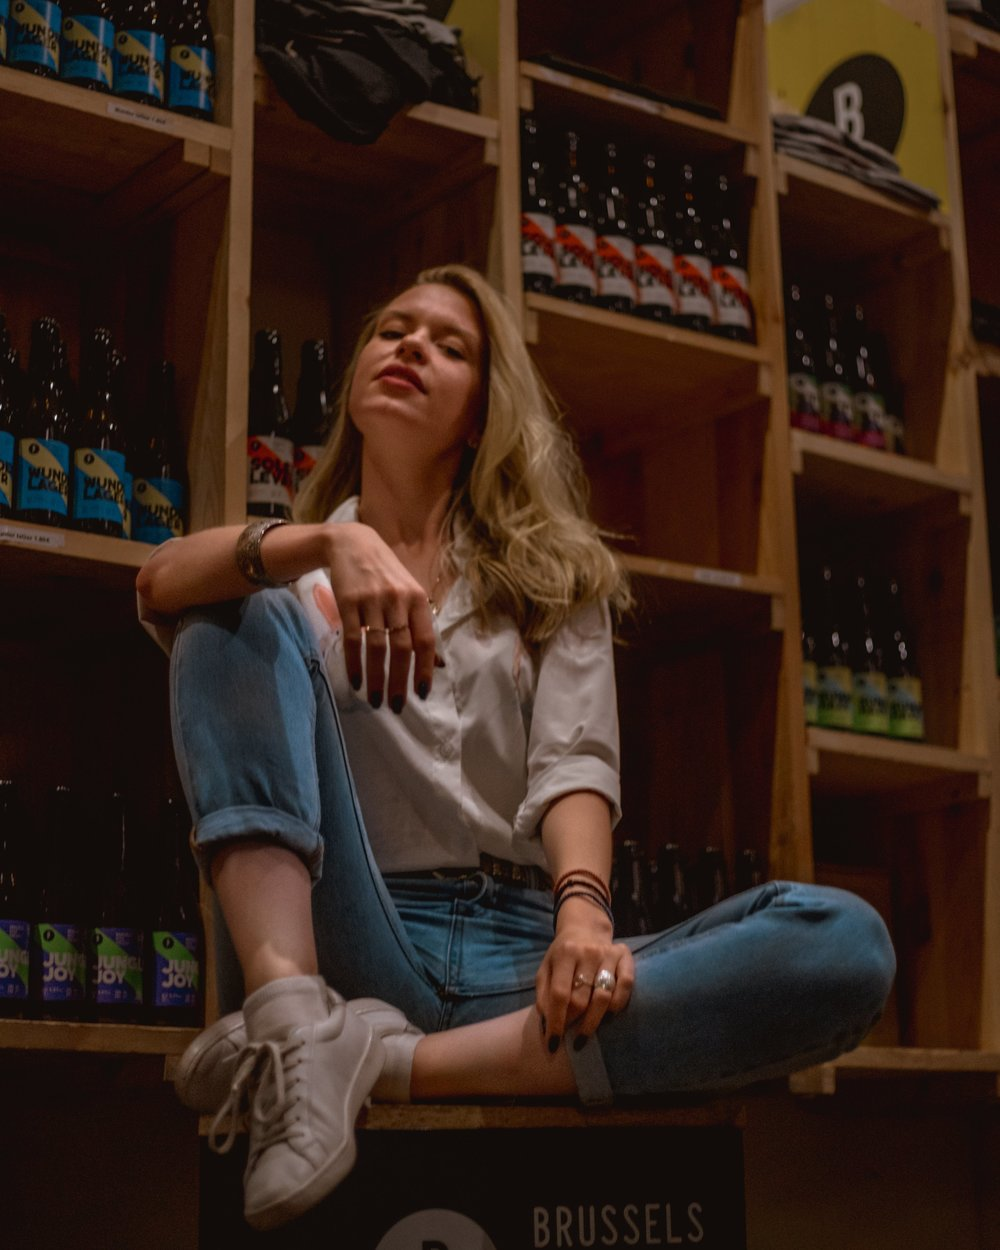 Me being Da Queen at Bxl Beer Project - Check out the full post on my IG